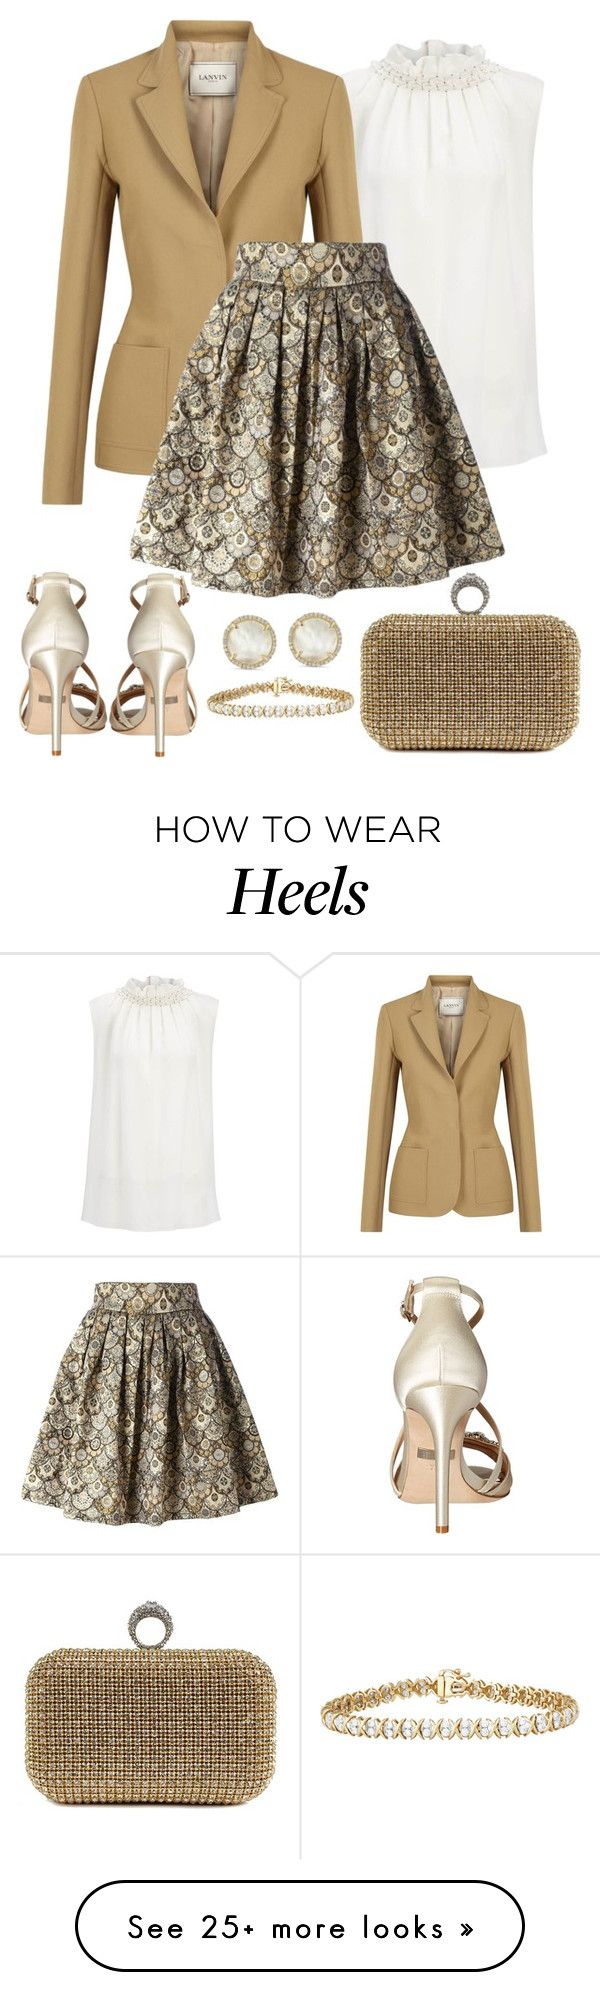 """Untitled #1313"" by gallant81 on Polyvore featuring Badgley Mischka, Joseph, Lanvin, Leo and Anne Sisteron"